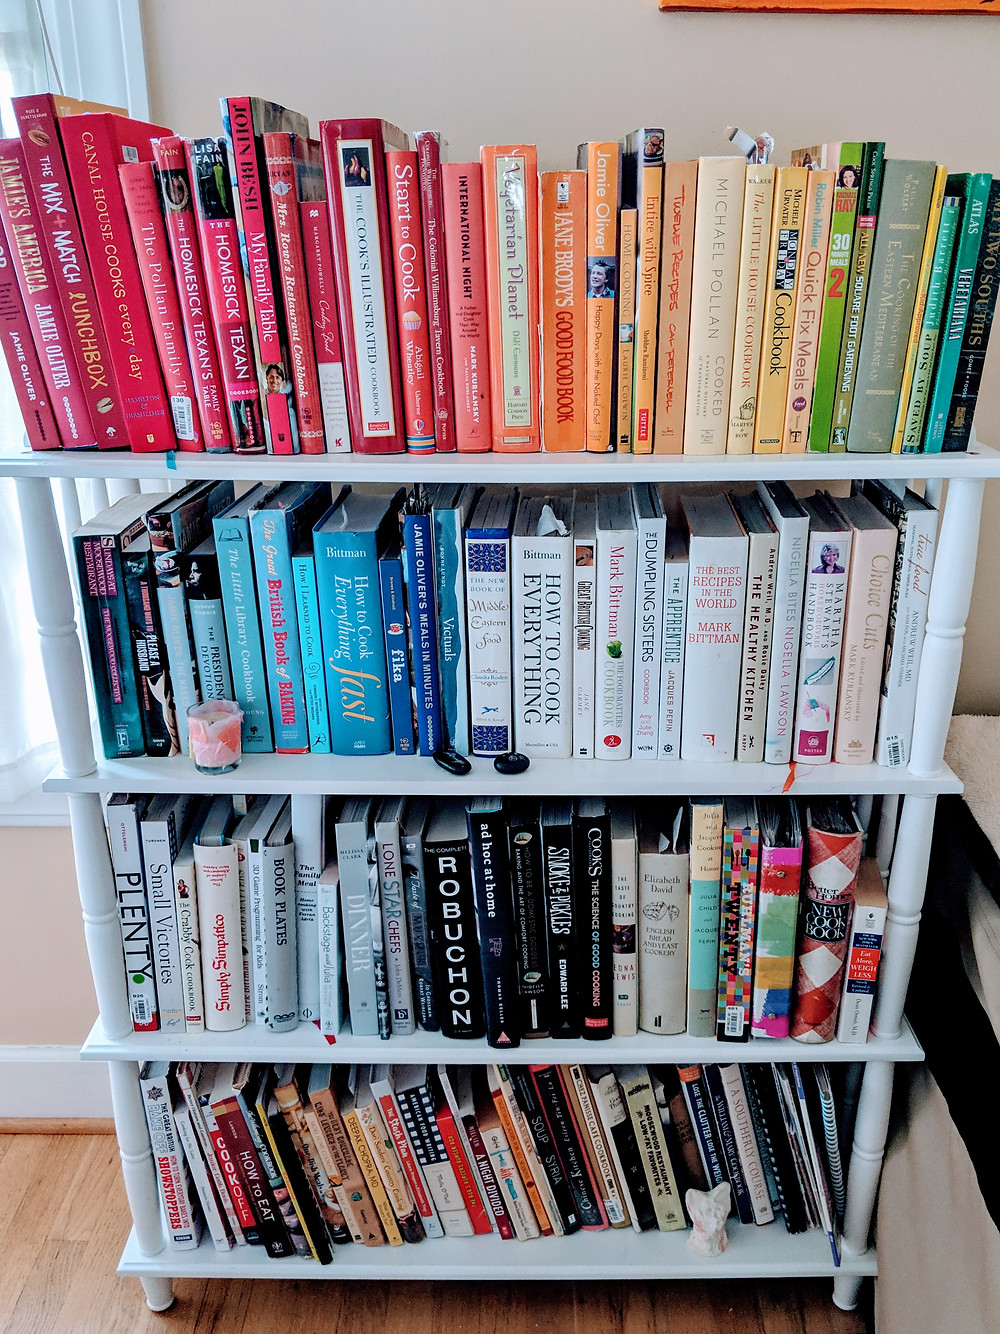 A sampling of my cookbooks...color coordinated by my daughter